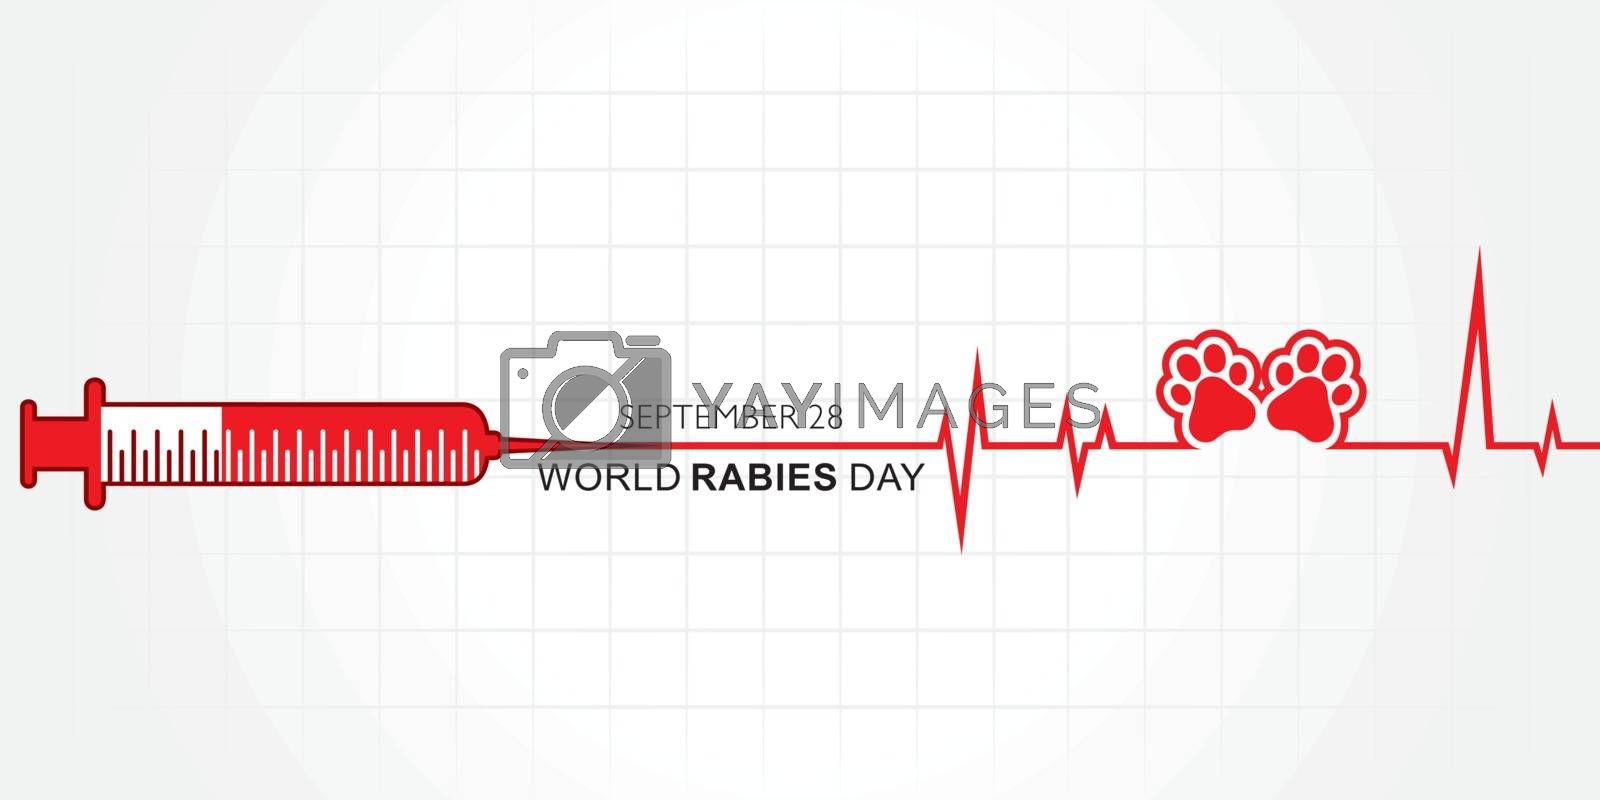 World Rabies Day concept observed on September 28th by graphicsdunia4you